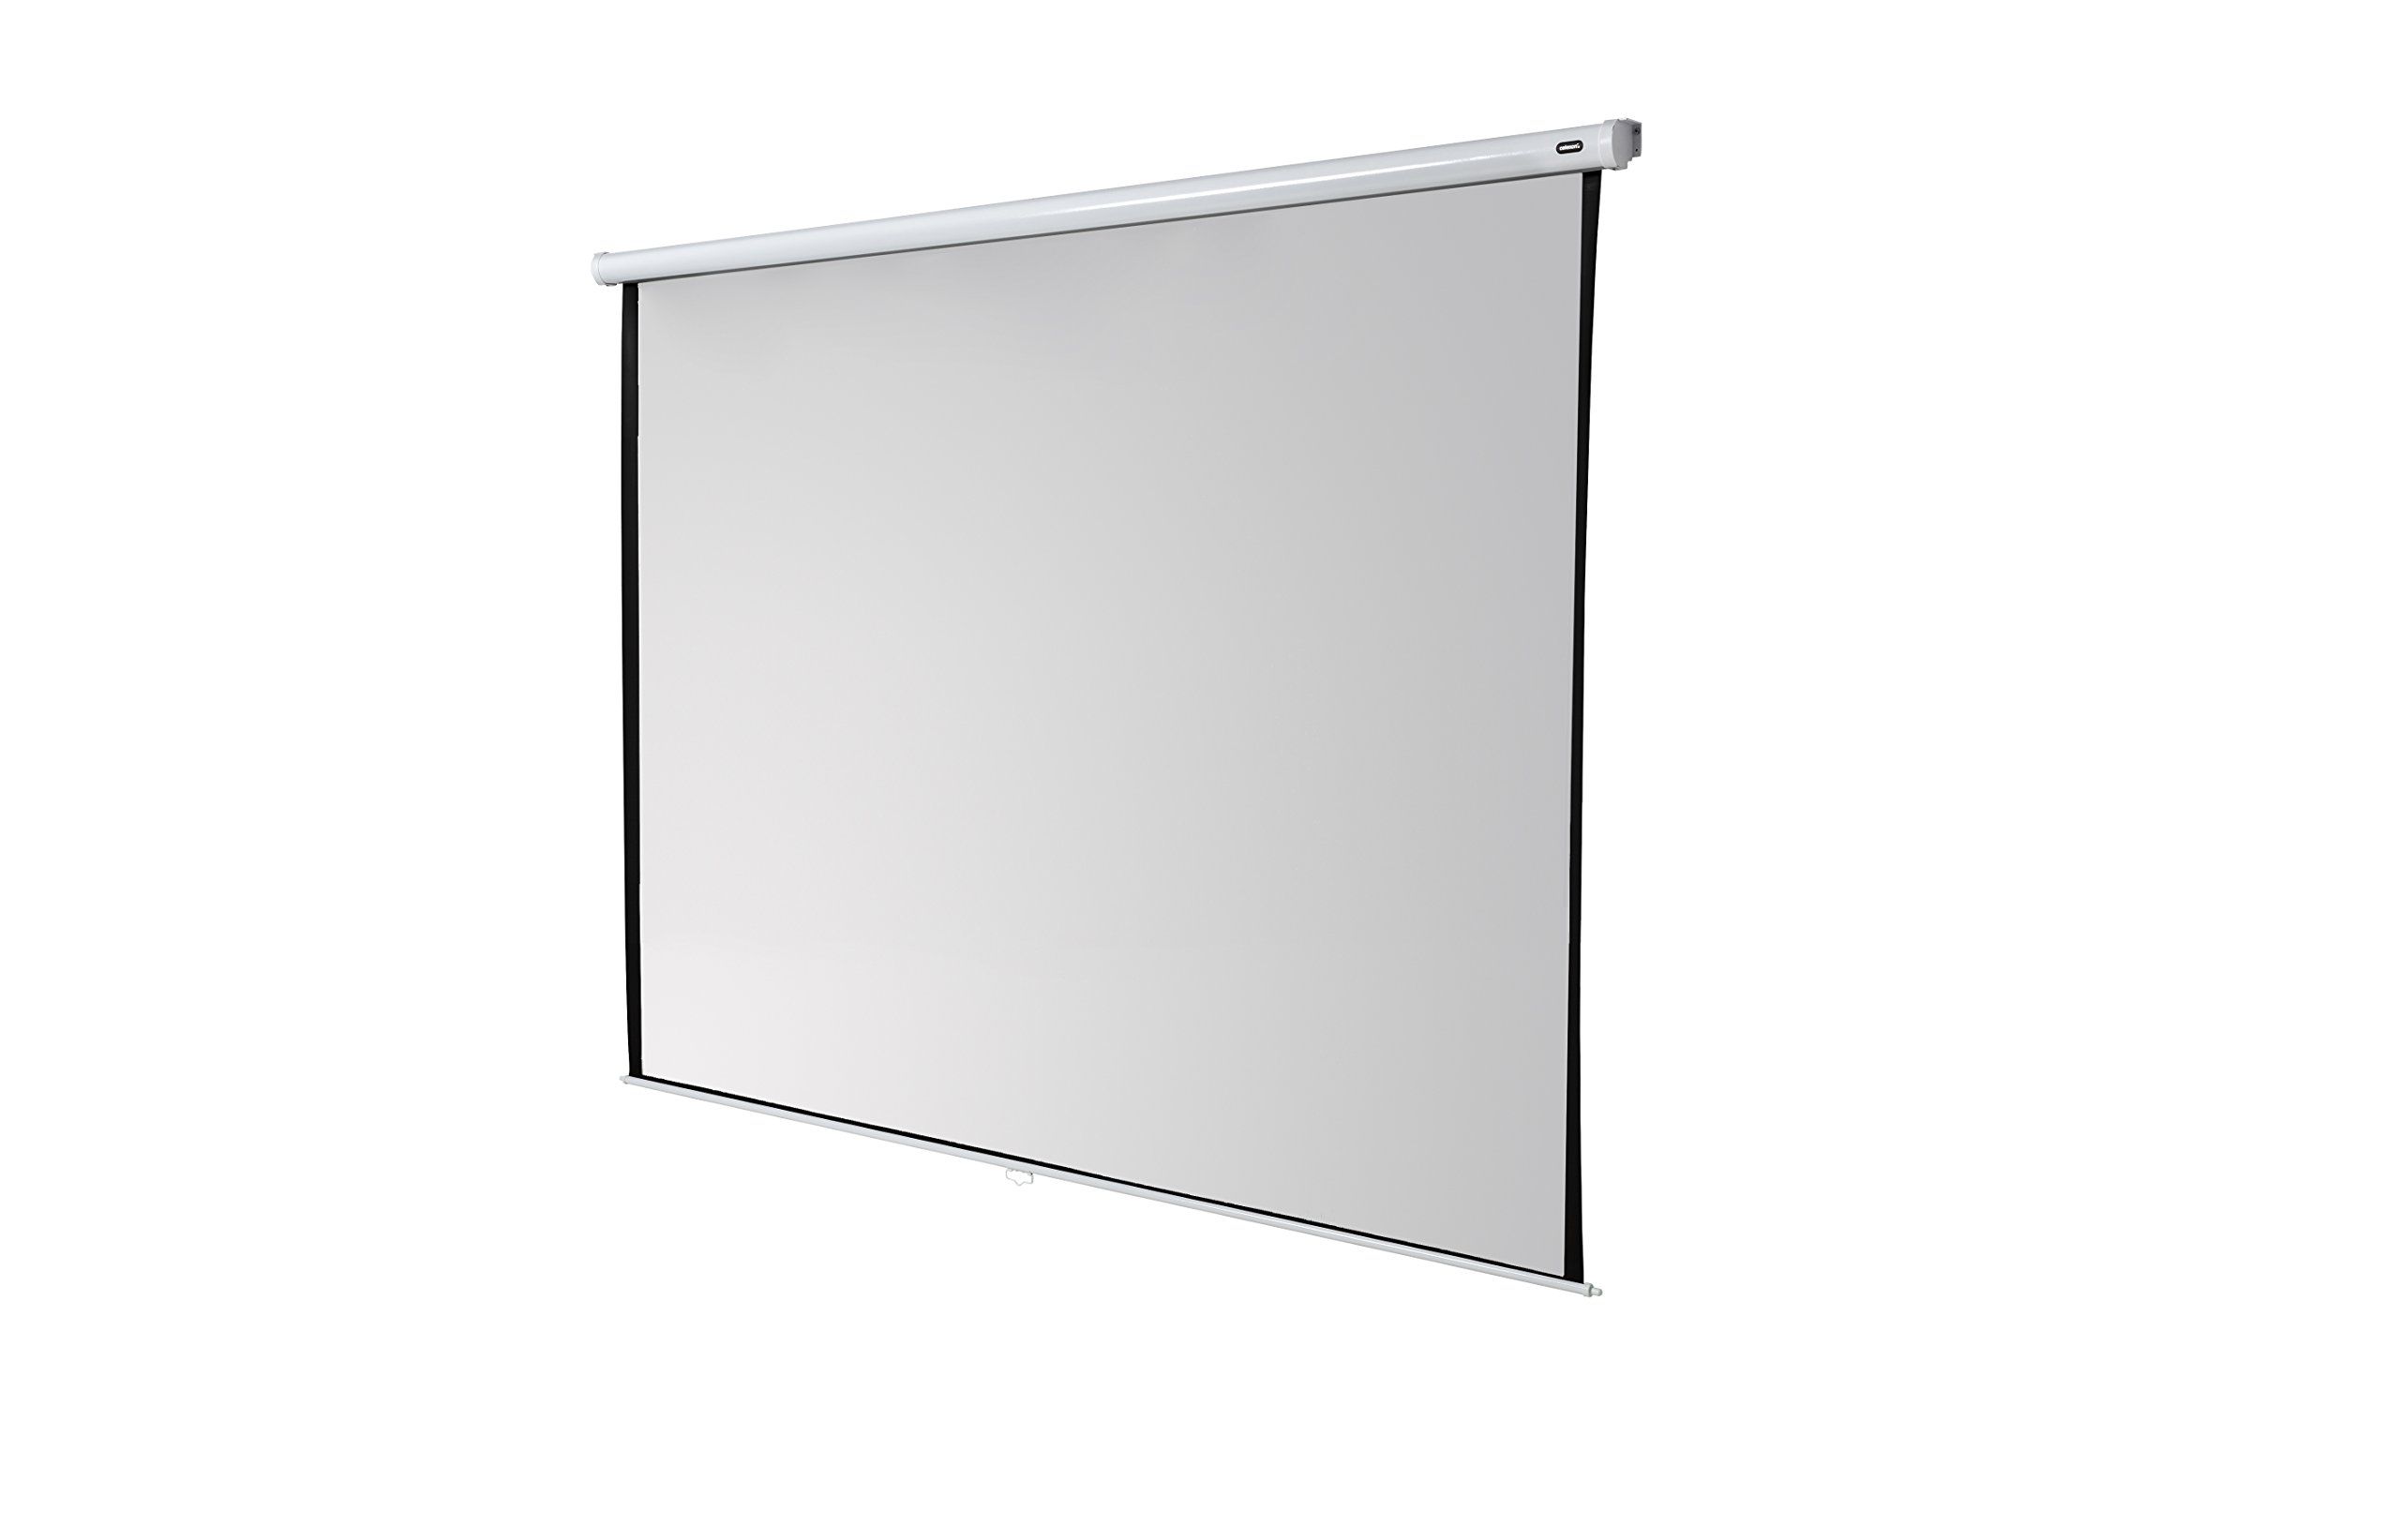 celexon 167'' Manual Economy 118 x 118 inches viewing area | 1:1 format | Manual Pull Down Projector Screen | Wall or ceiling mounting | Gain factor of 1.0 for home cinema & business environments